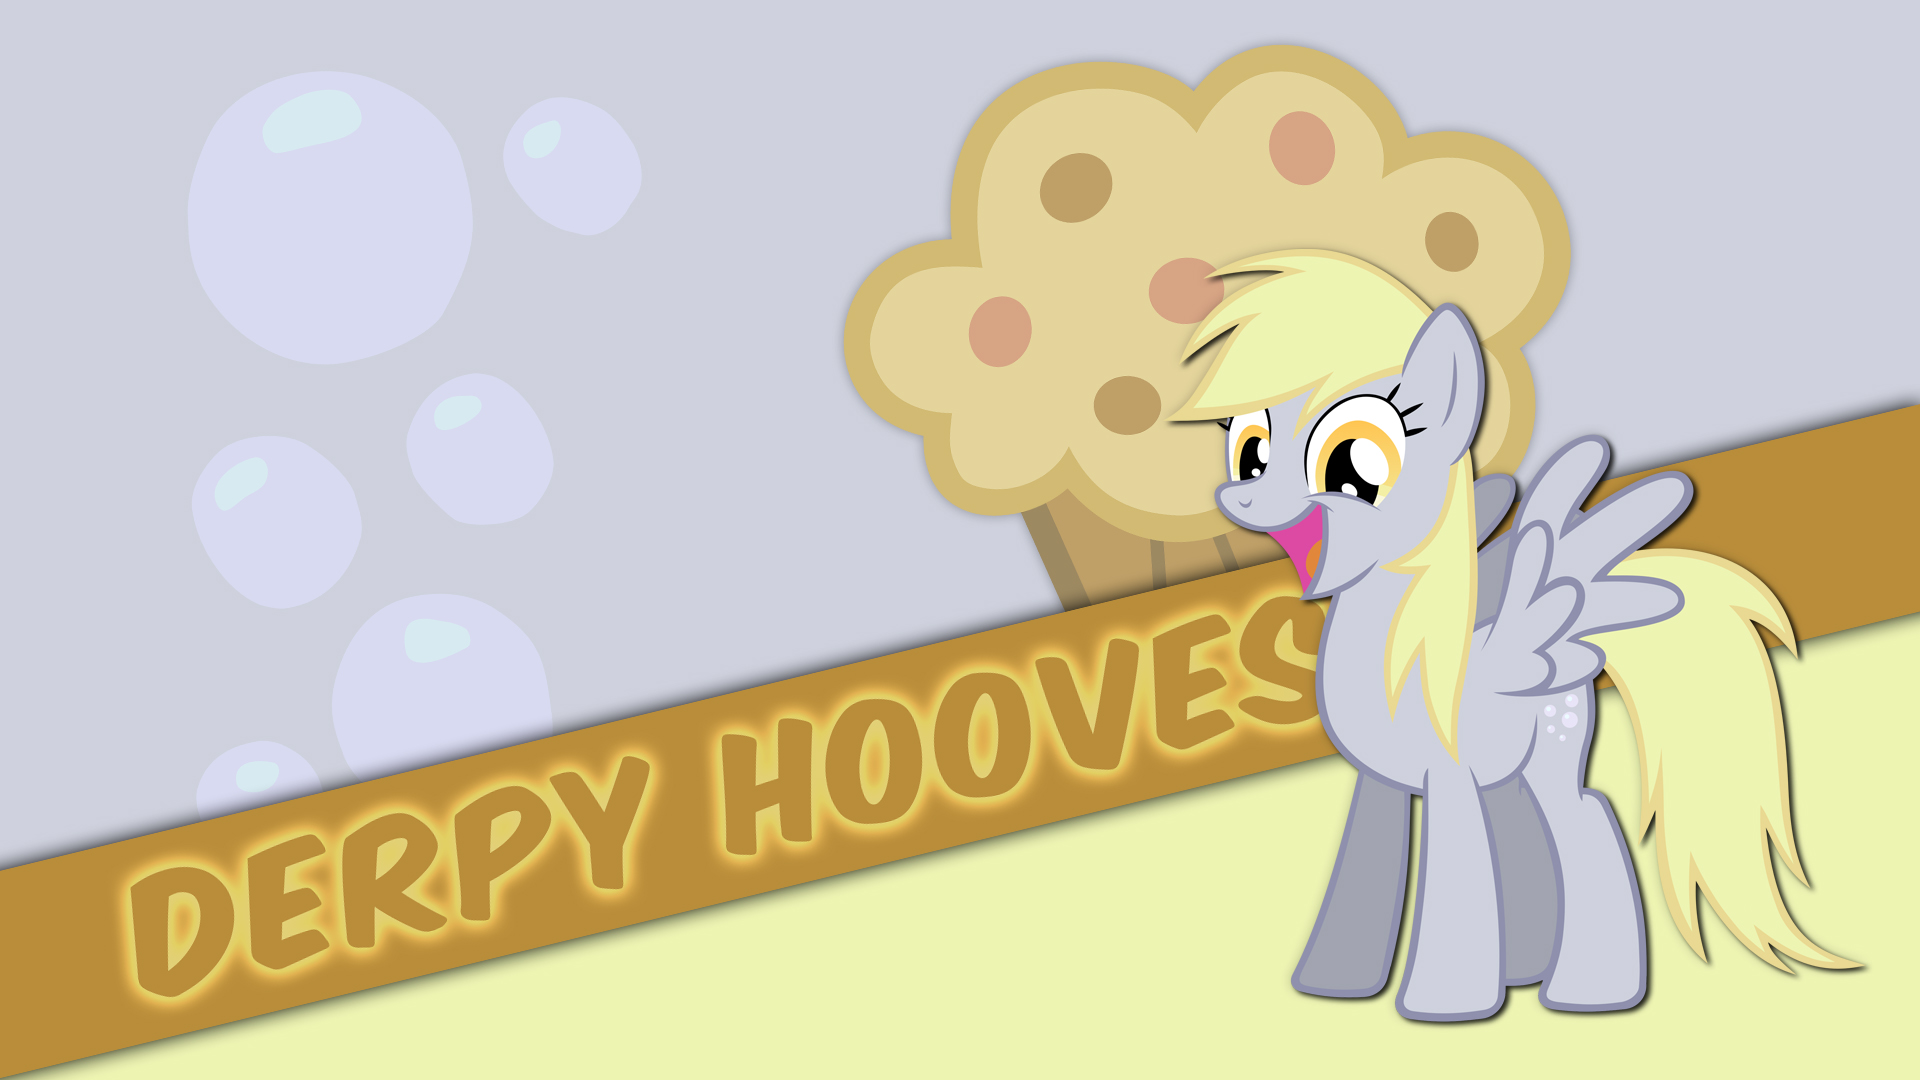 Derpy Hooves Wallpaper By BlackGryph0n Noxwyll Pappkarton And